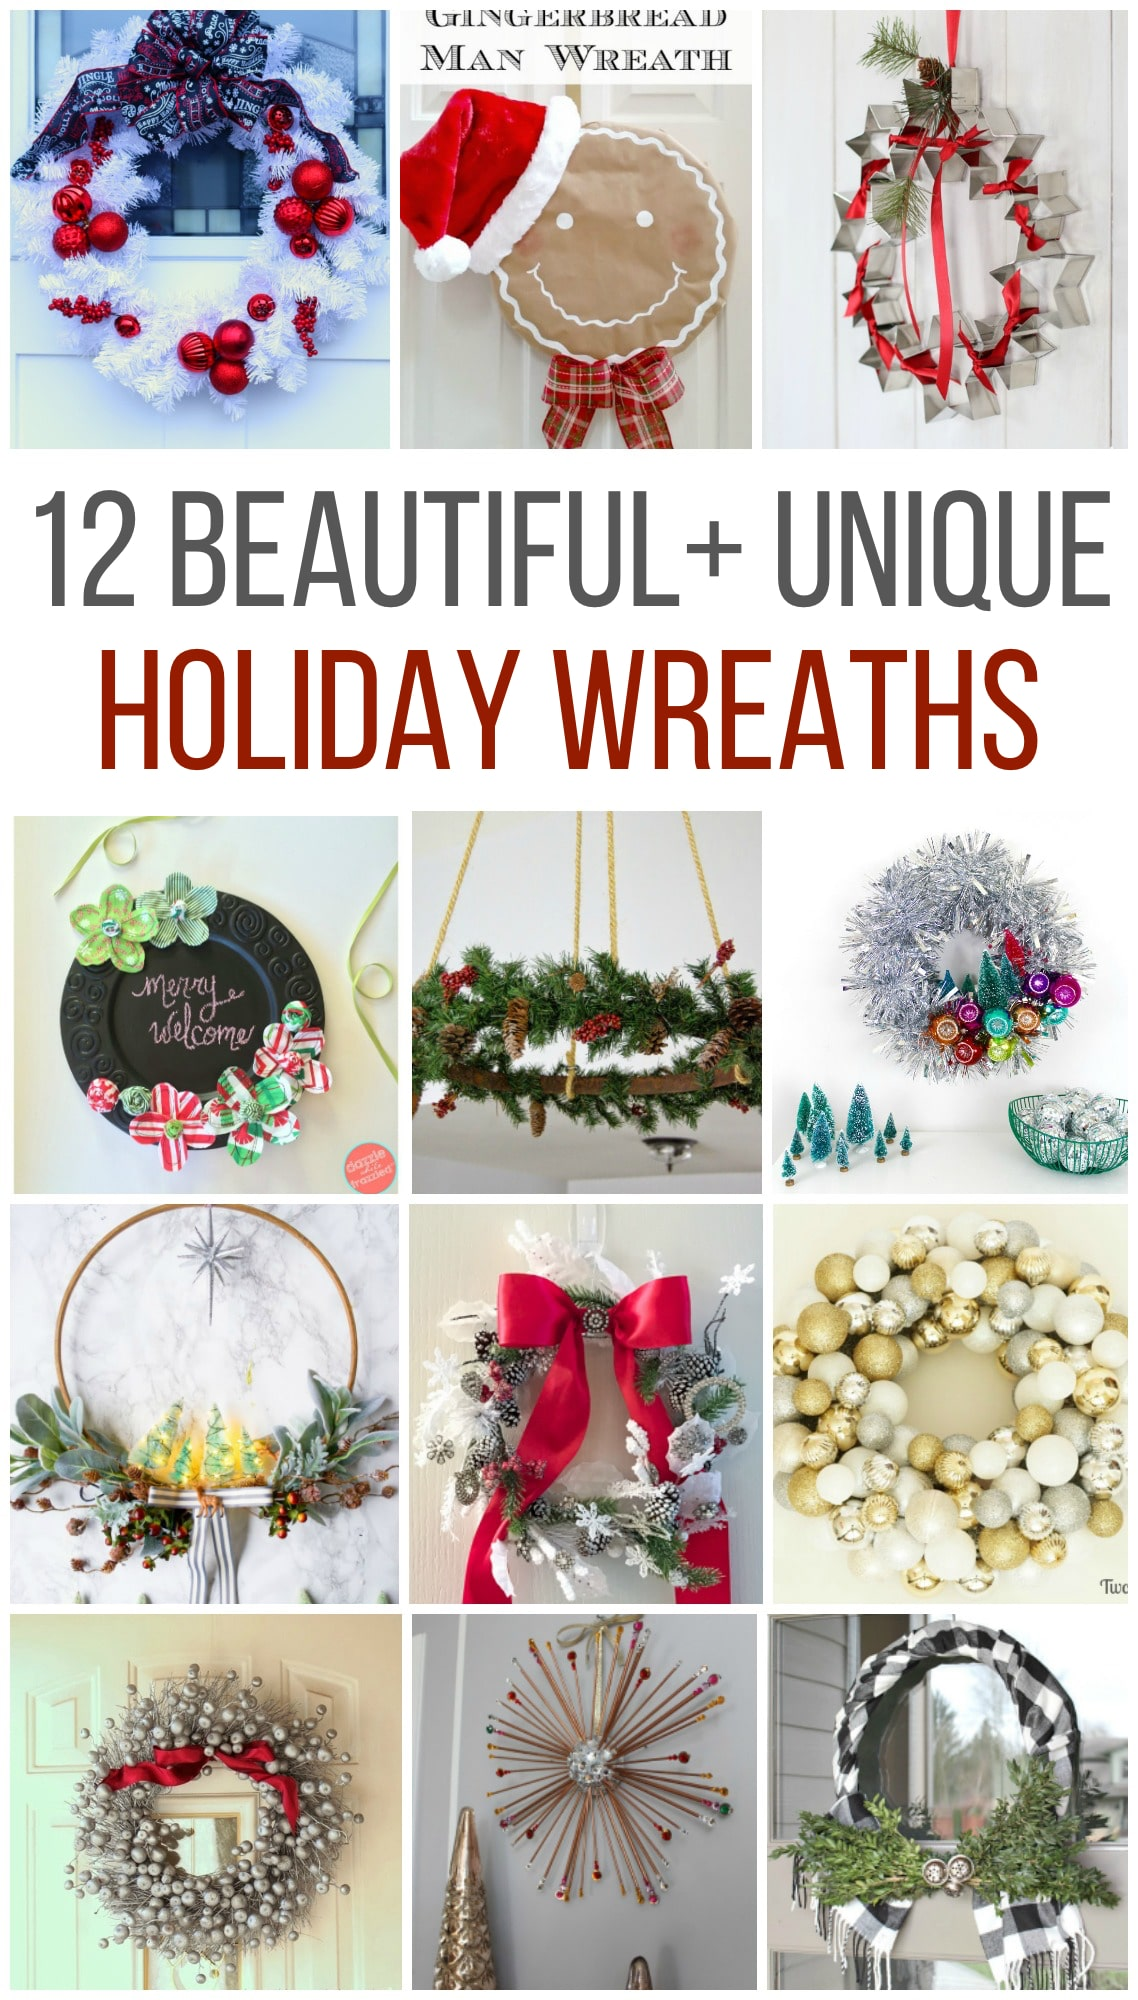 12 Beautiful and Unique Holiday Wreaths, tinsel wreath, chalboard wreath, buffalo check wreath, #holidaywreath #christmaswreath #wreath #holiday #hoopwreath #gingerman #wreath